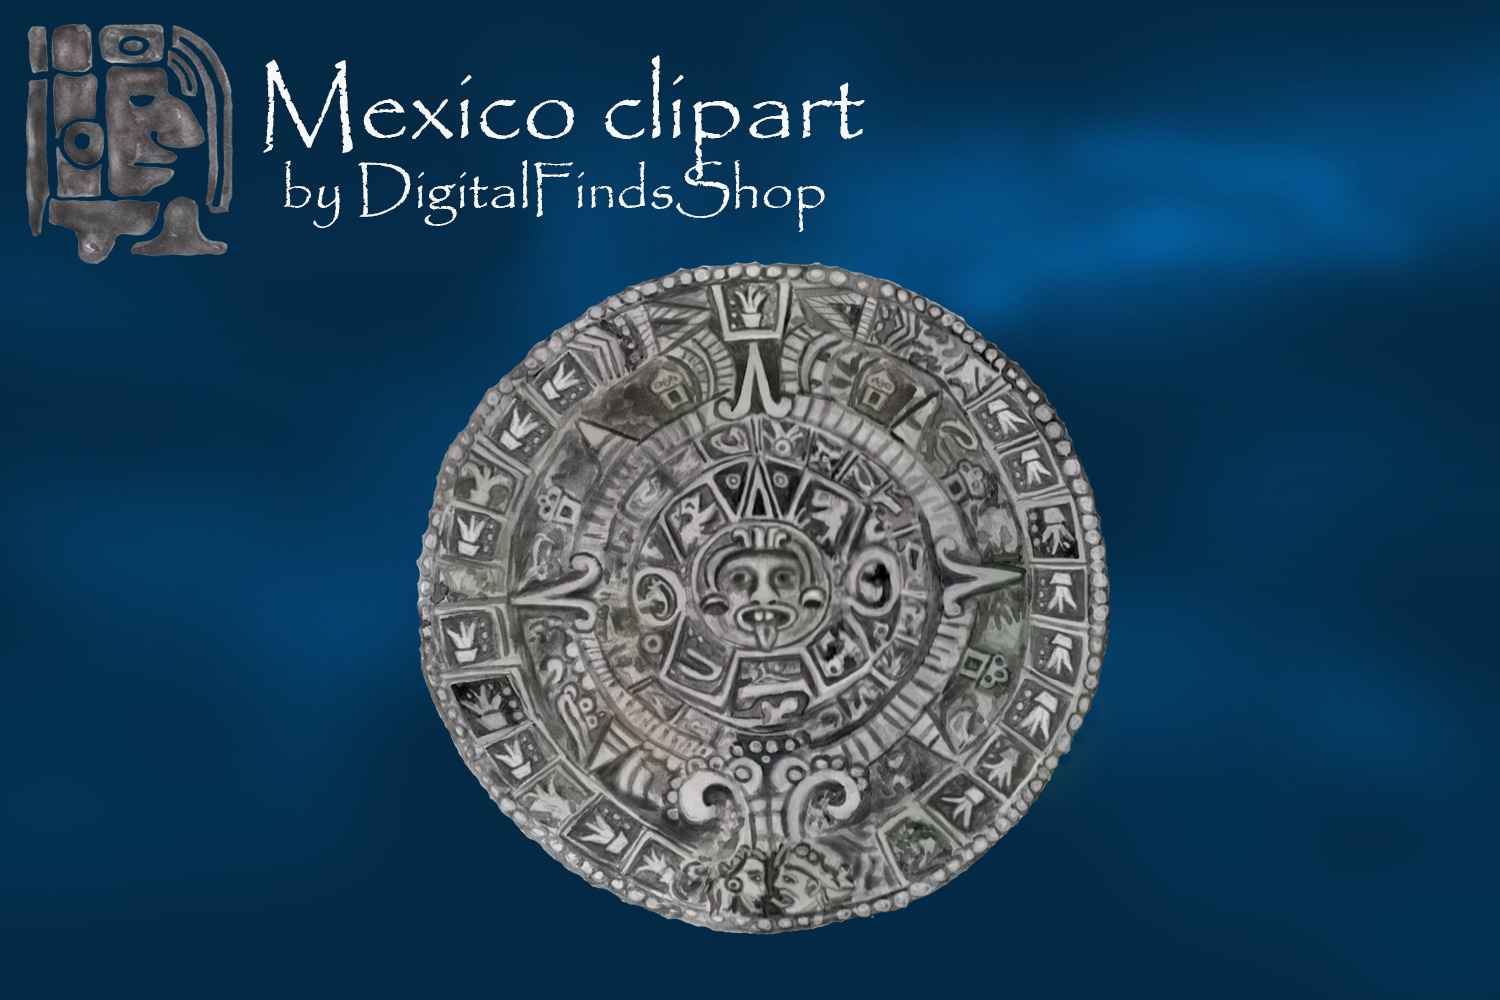 Mayan clipart, ancient civilizations of Mexico watercolor example image 2